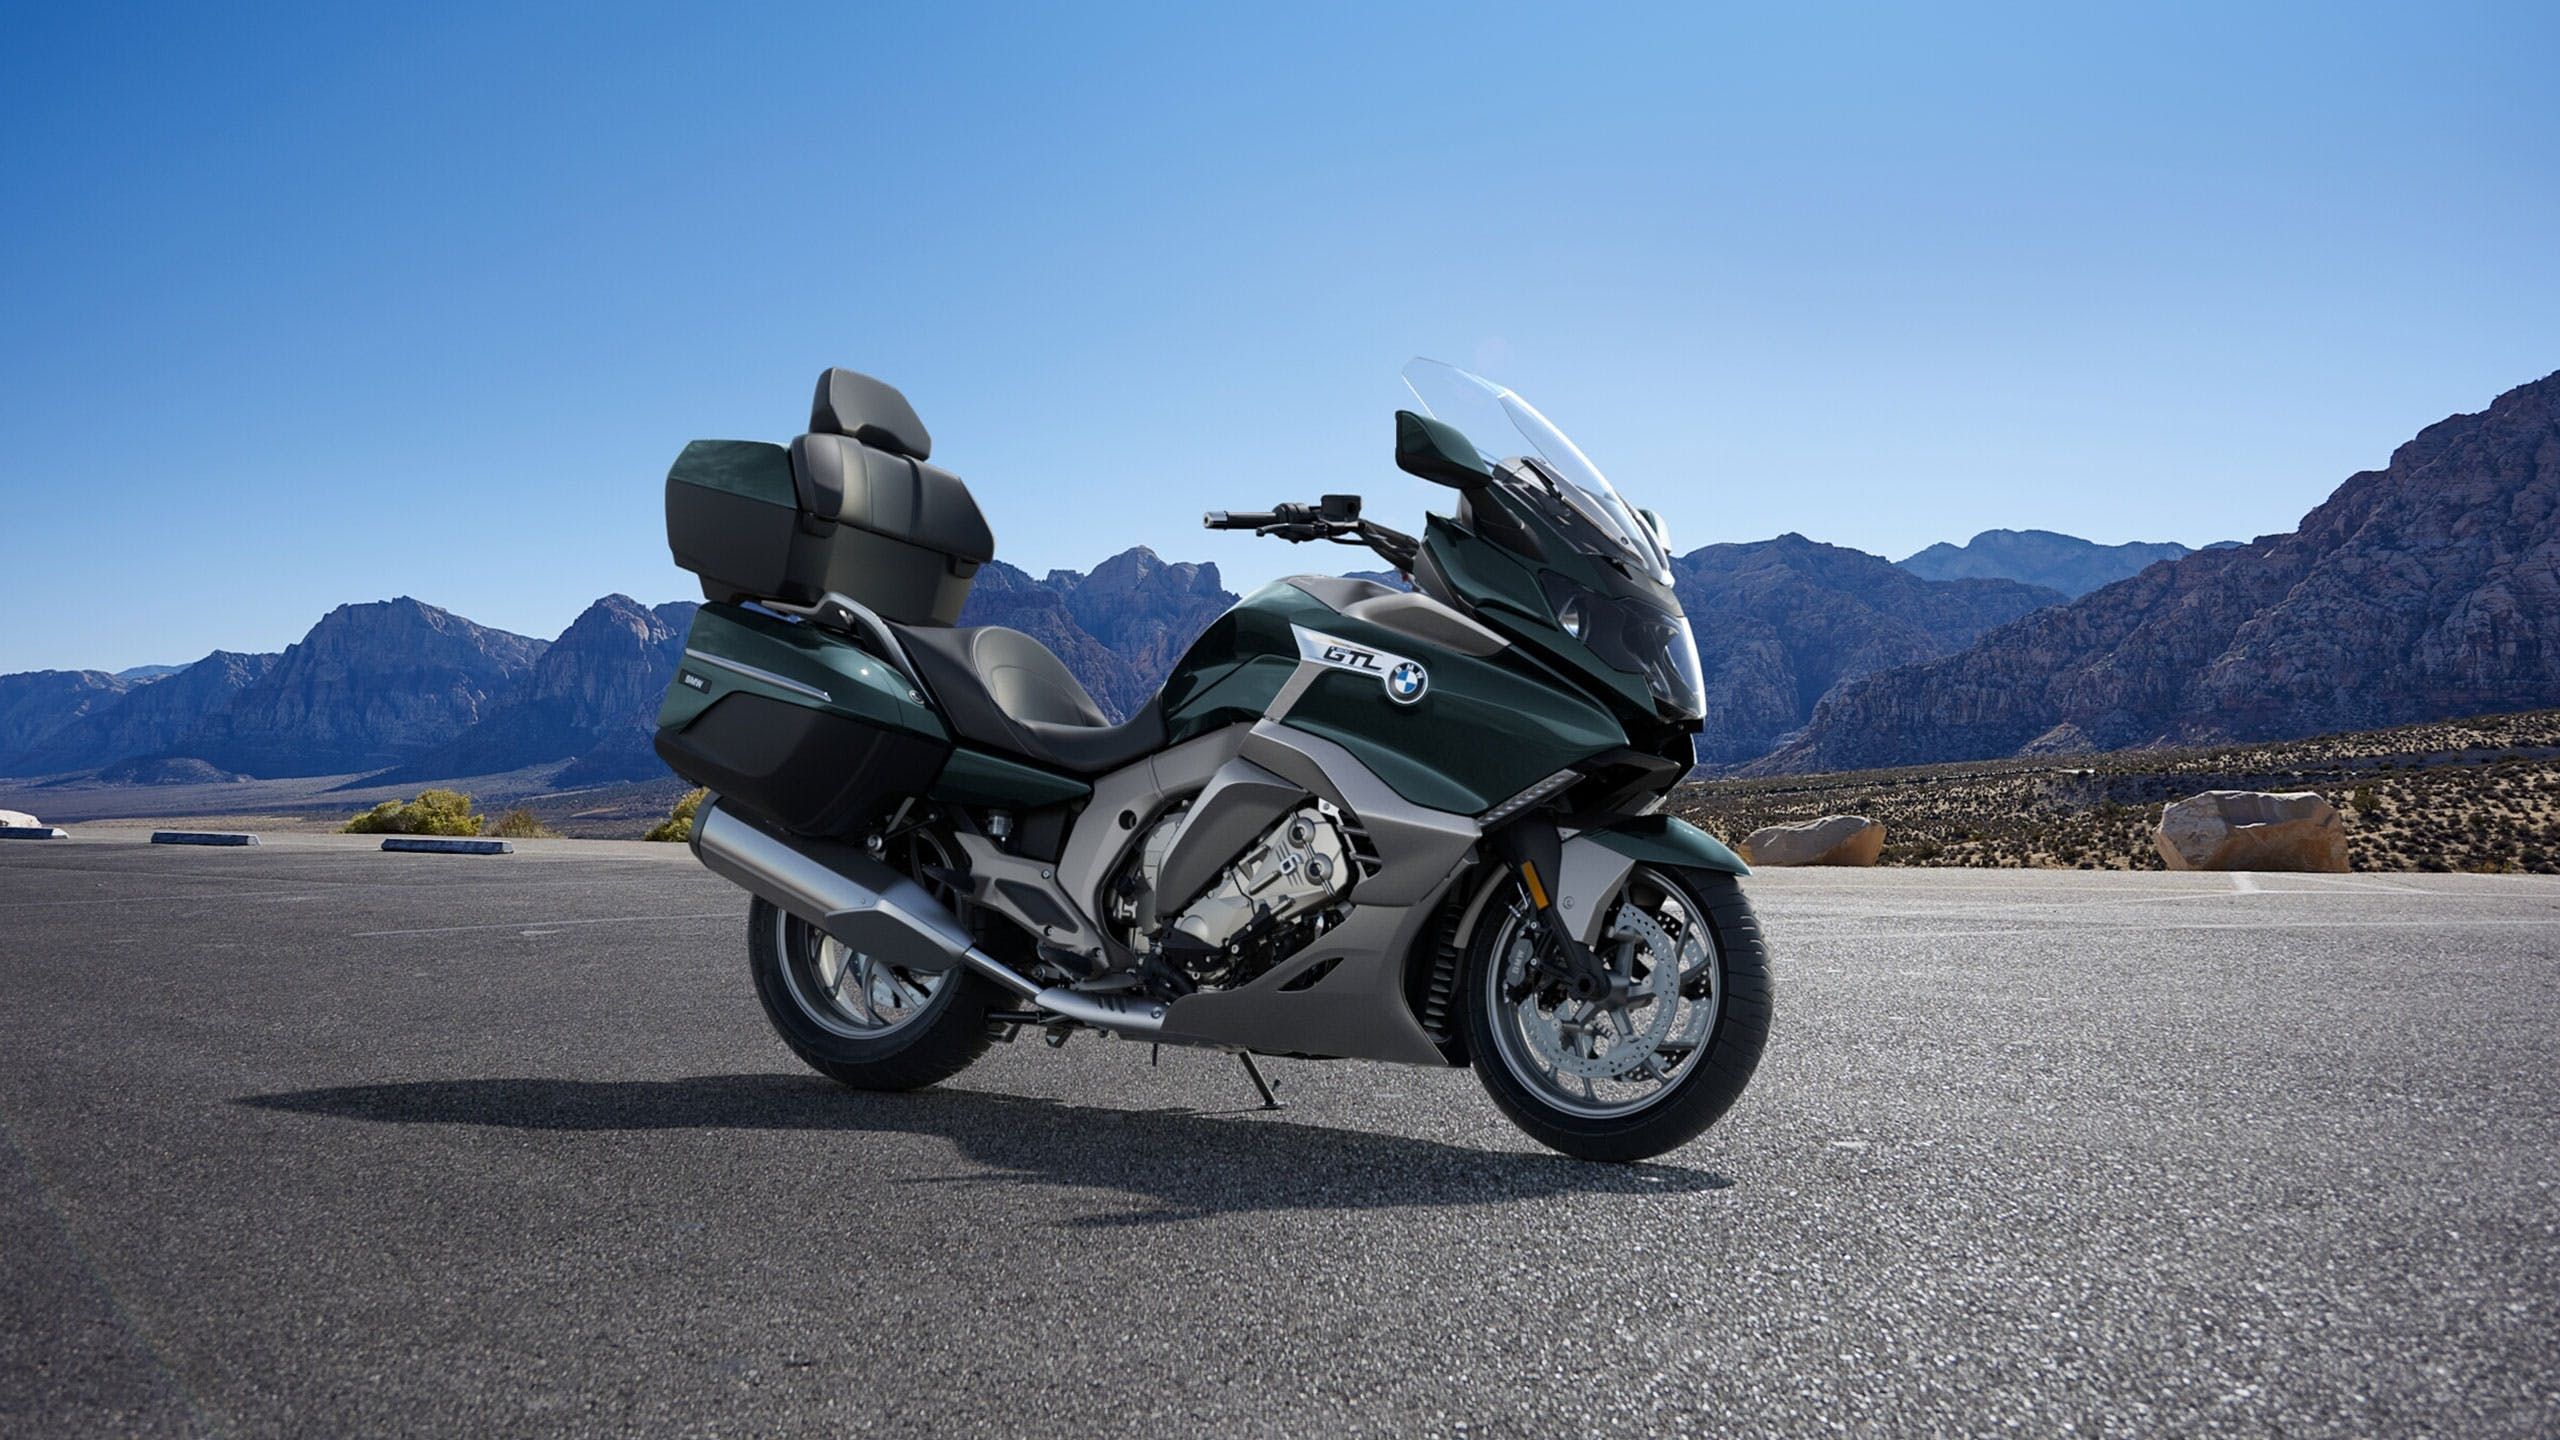 BMW K 1600 GTL ELEGANCE in pollux metallic colour parked on a road